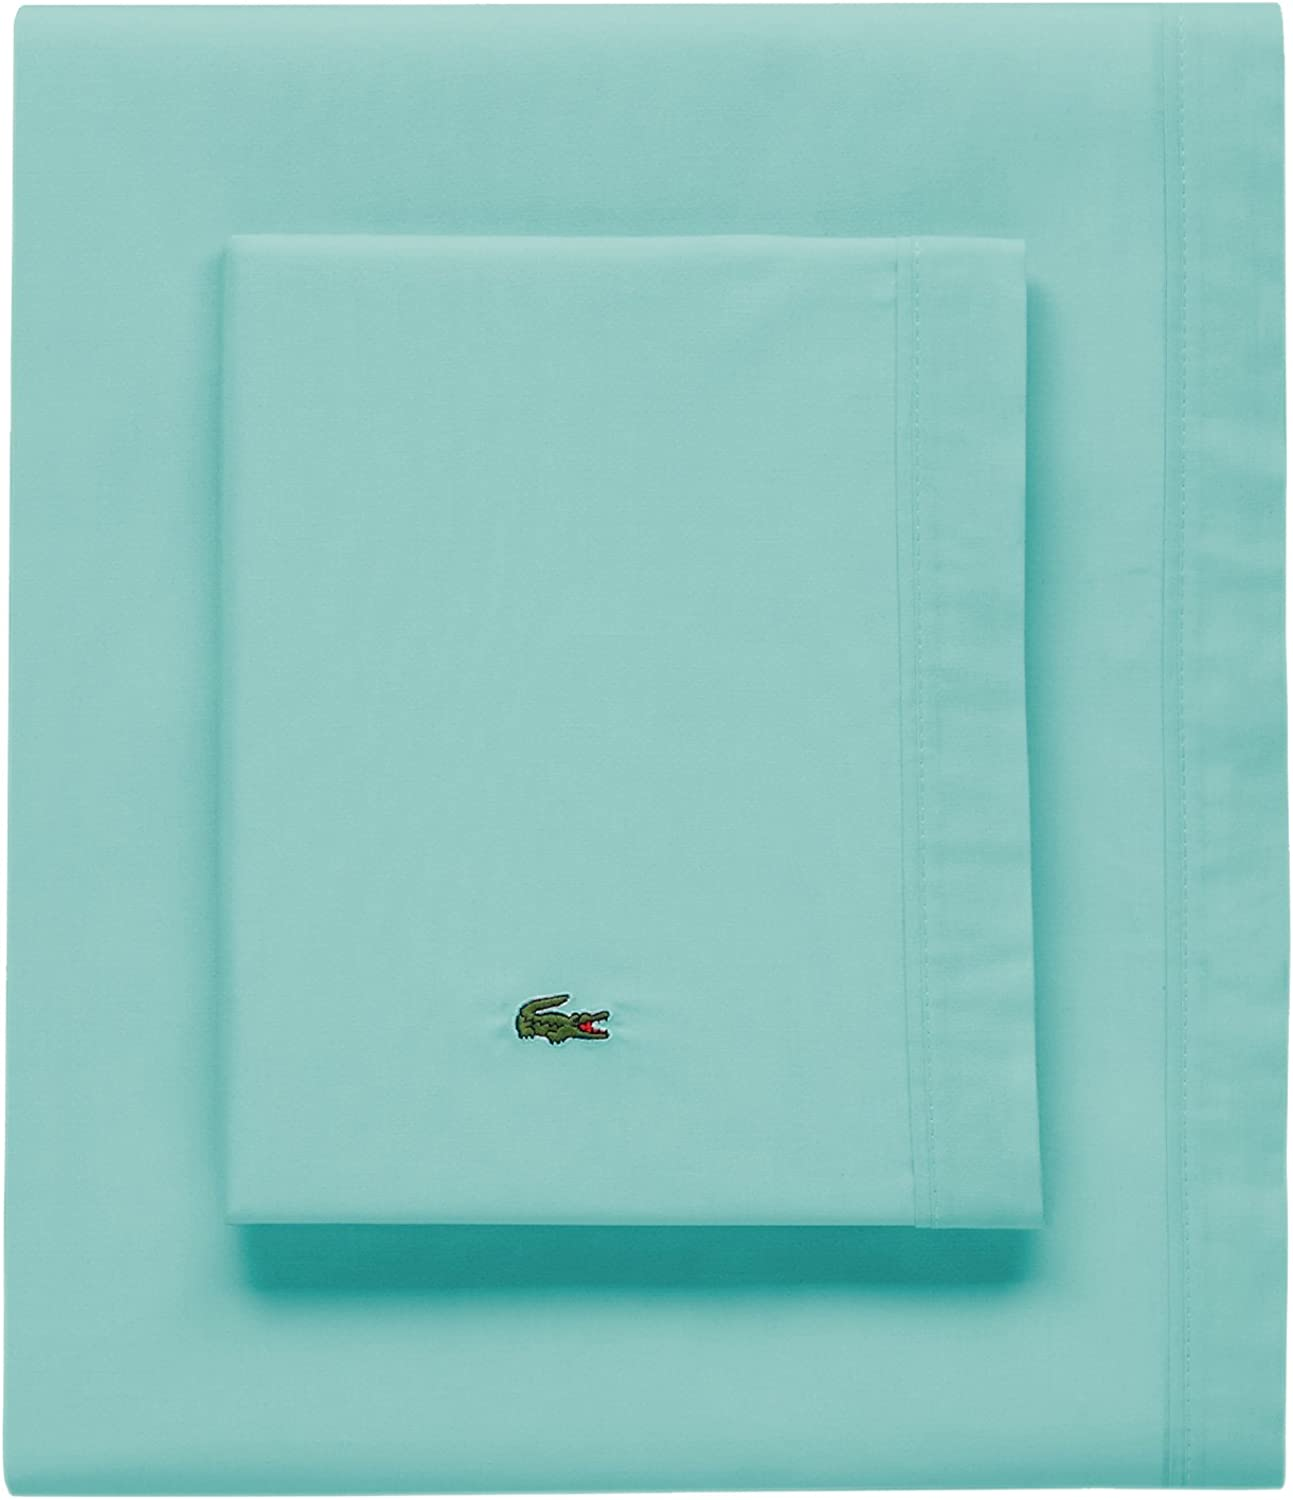 Lacoste 100% Cotton Percale Sheet Set, Solid, Water bluee, King